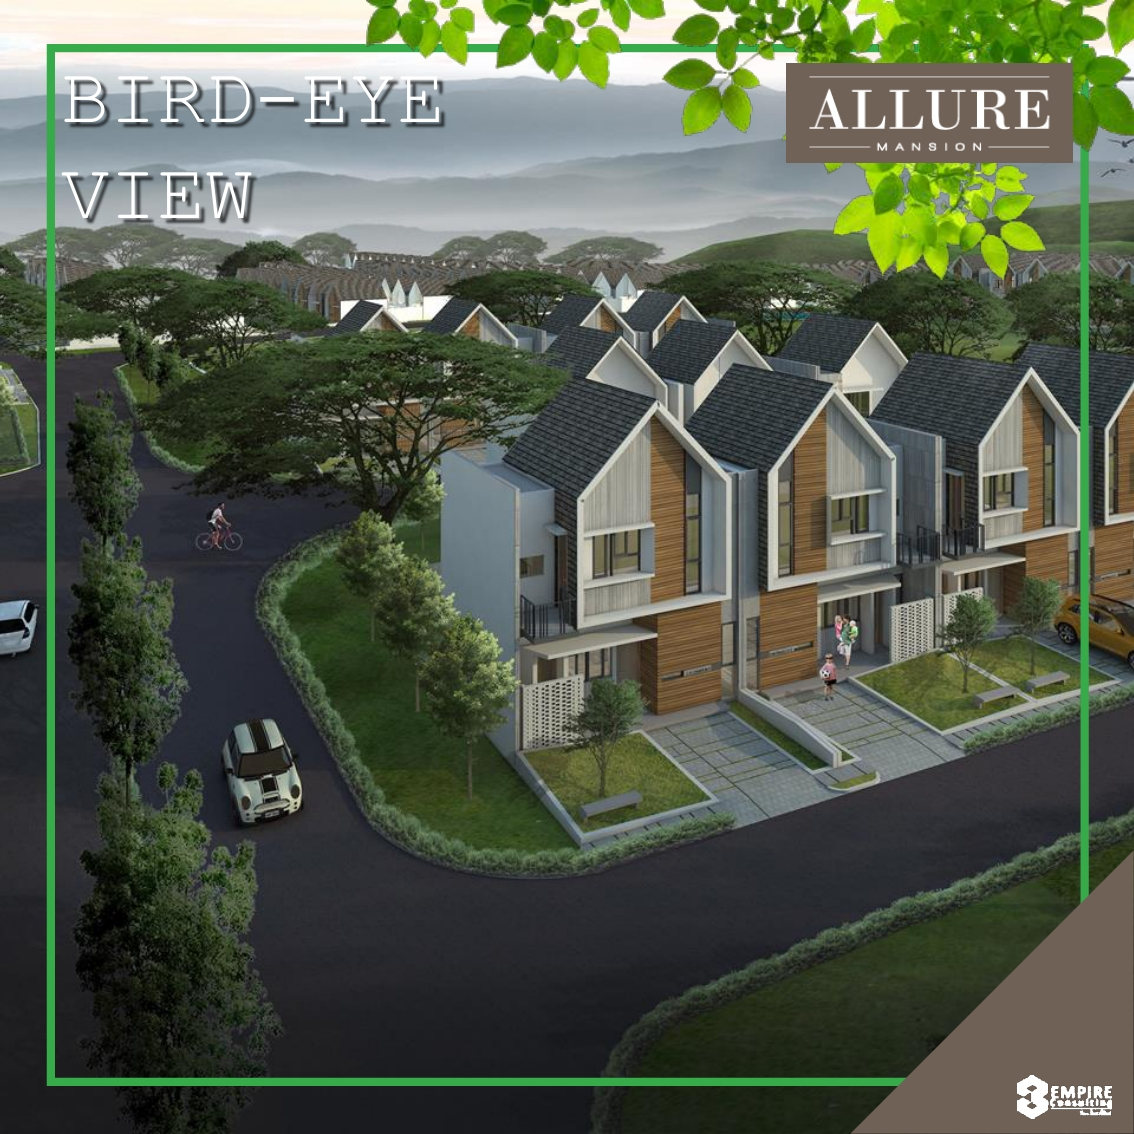 allure-mansion-jati-warna